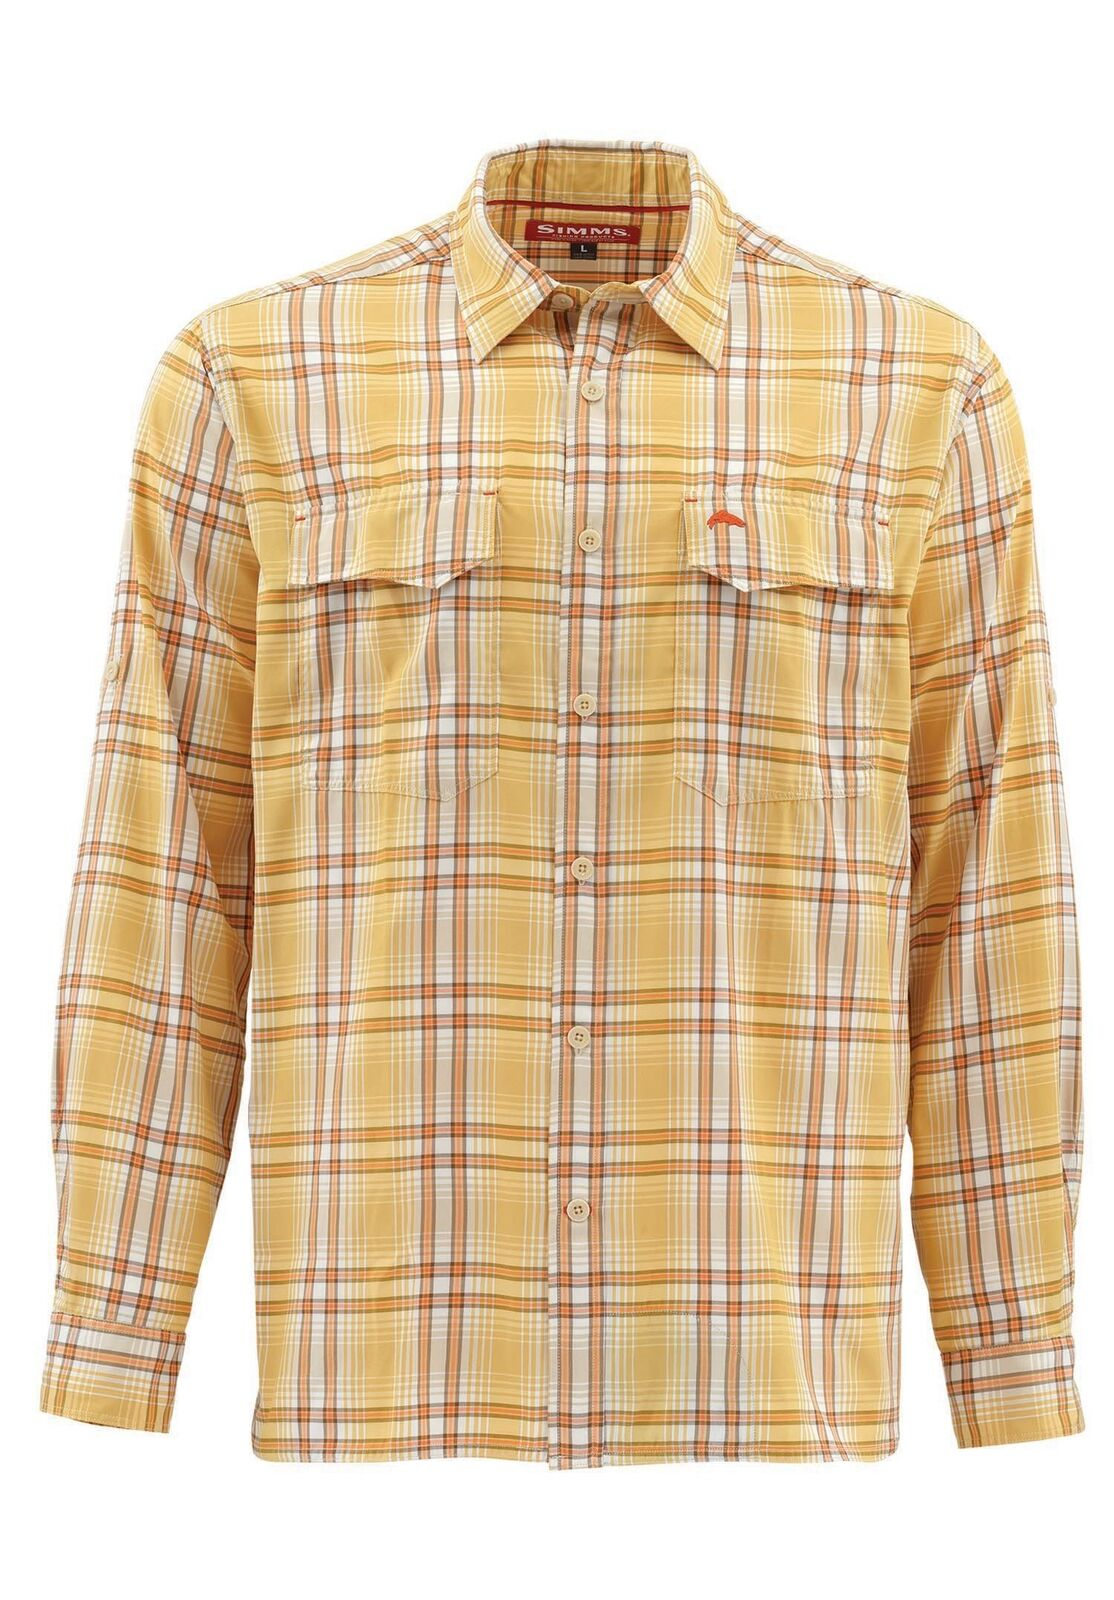 Simms Legend Long Sleeve Shirt Bright Yellow Plaid  - Size XL -CLOSEOUT  the best selection of